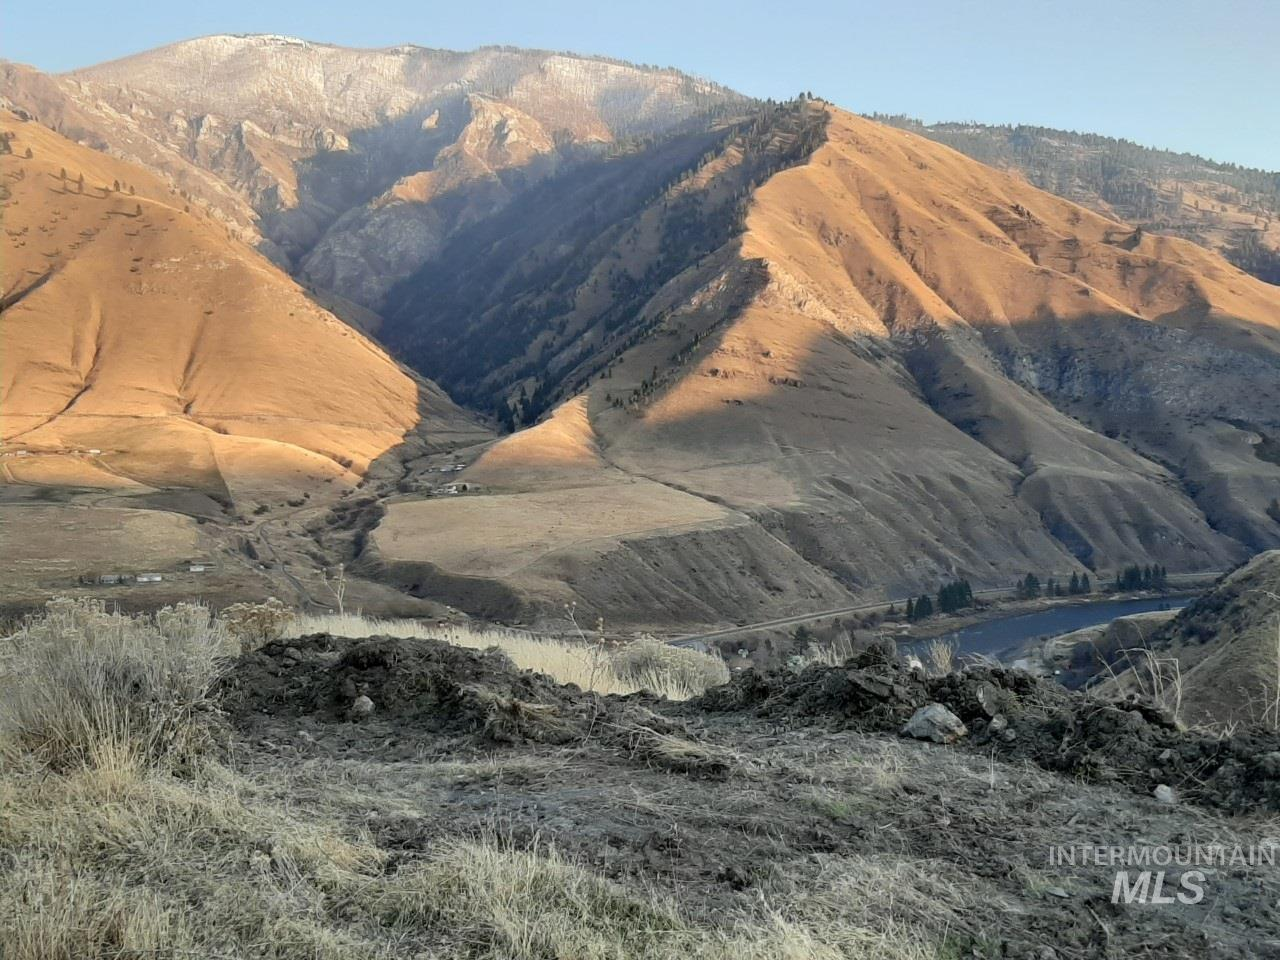 TBD Parcel C Cow Creek Road, Riggins, Idaho 83549, Land For Sale, Price $225,000, 98787548